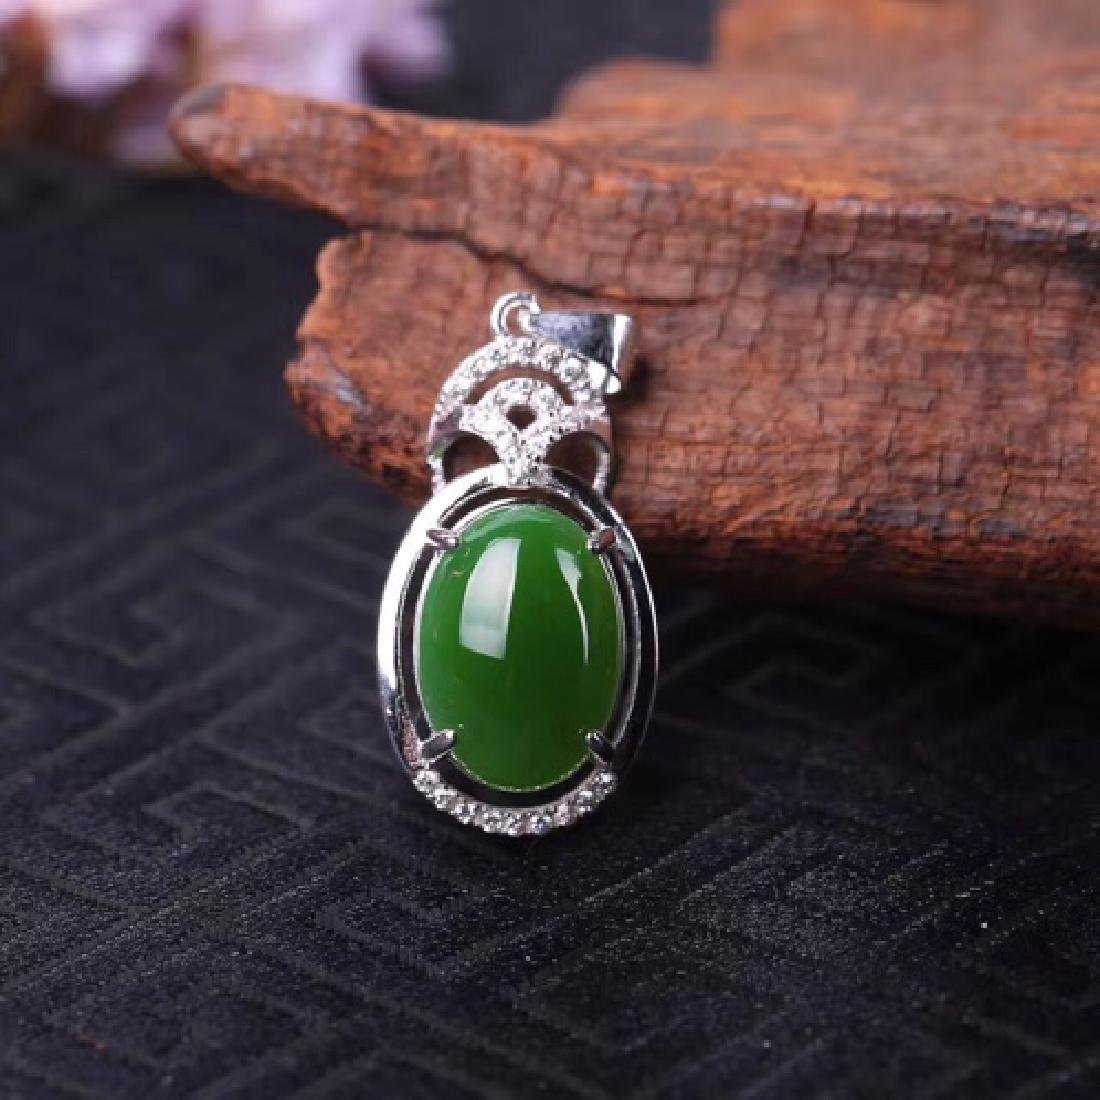 NATURAL OVAL-SHAPED GREEN JADEITE PENDANT